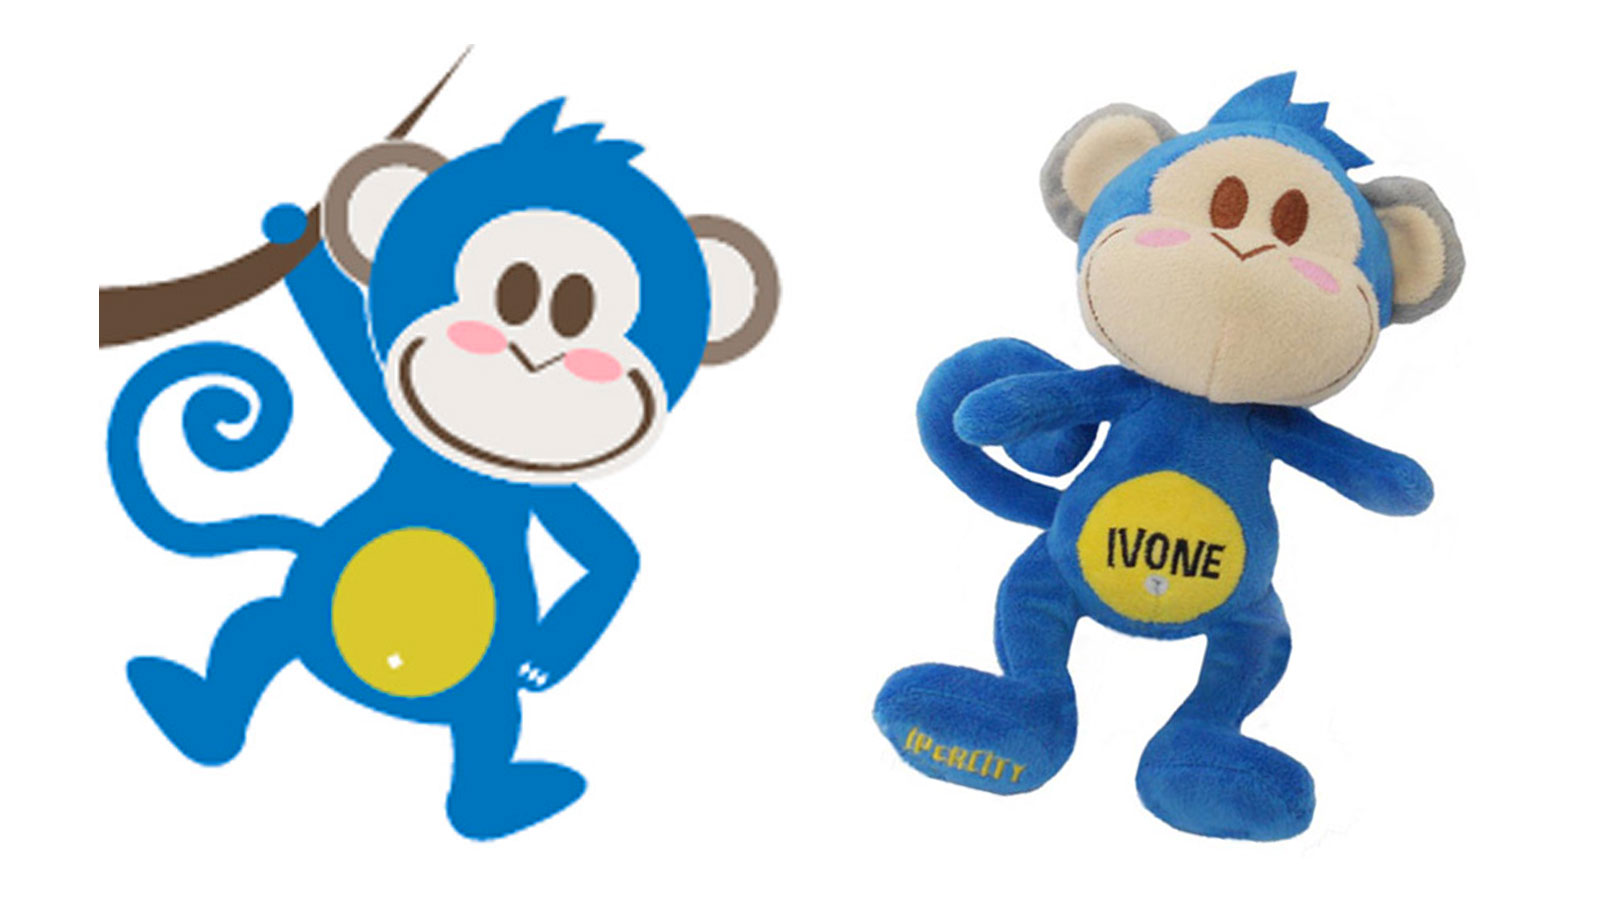 Peluche personalizzato IVONE - BY IPERCITY